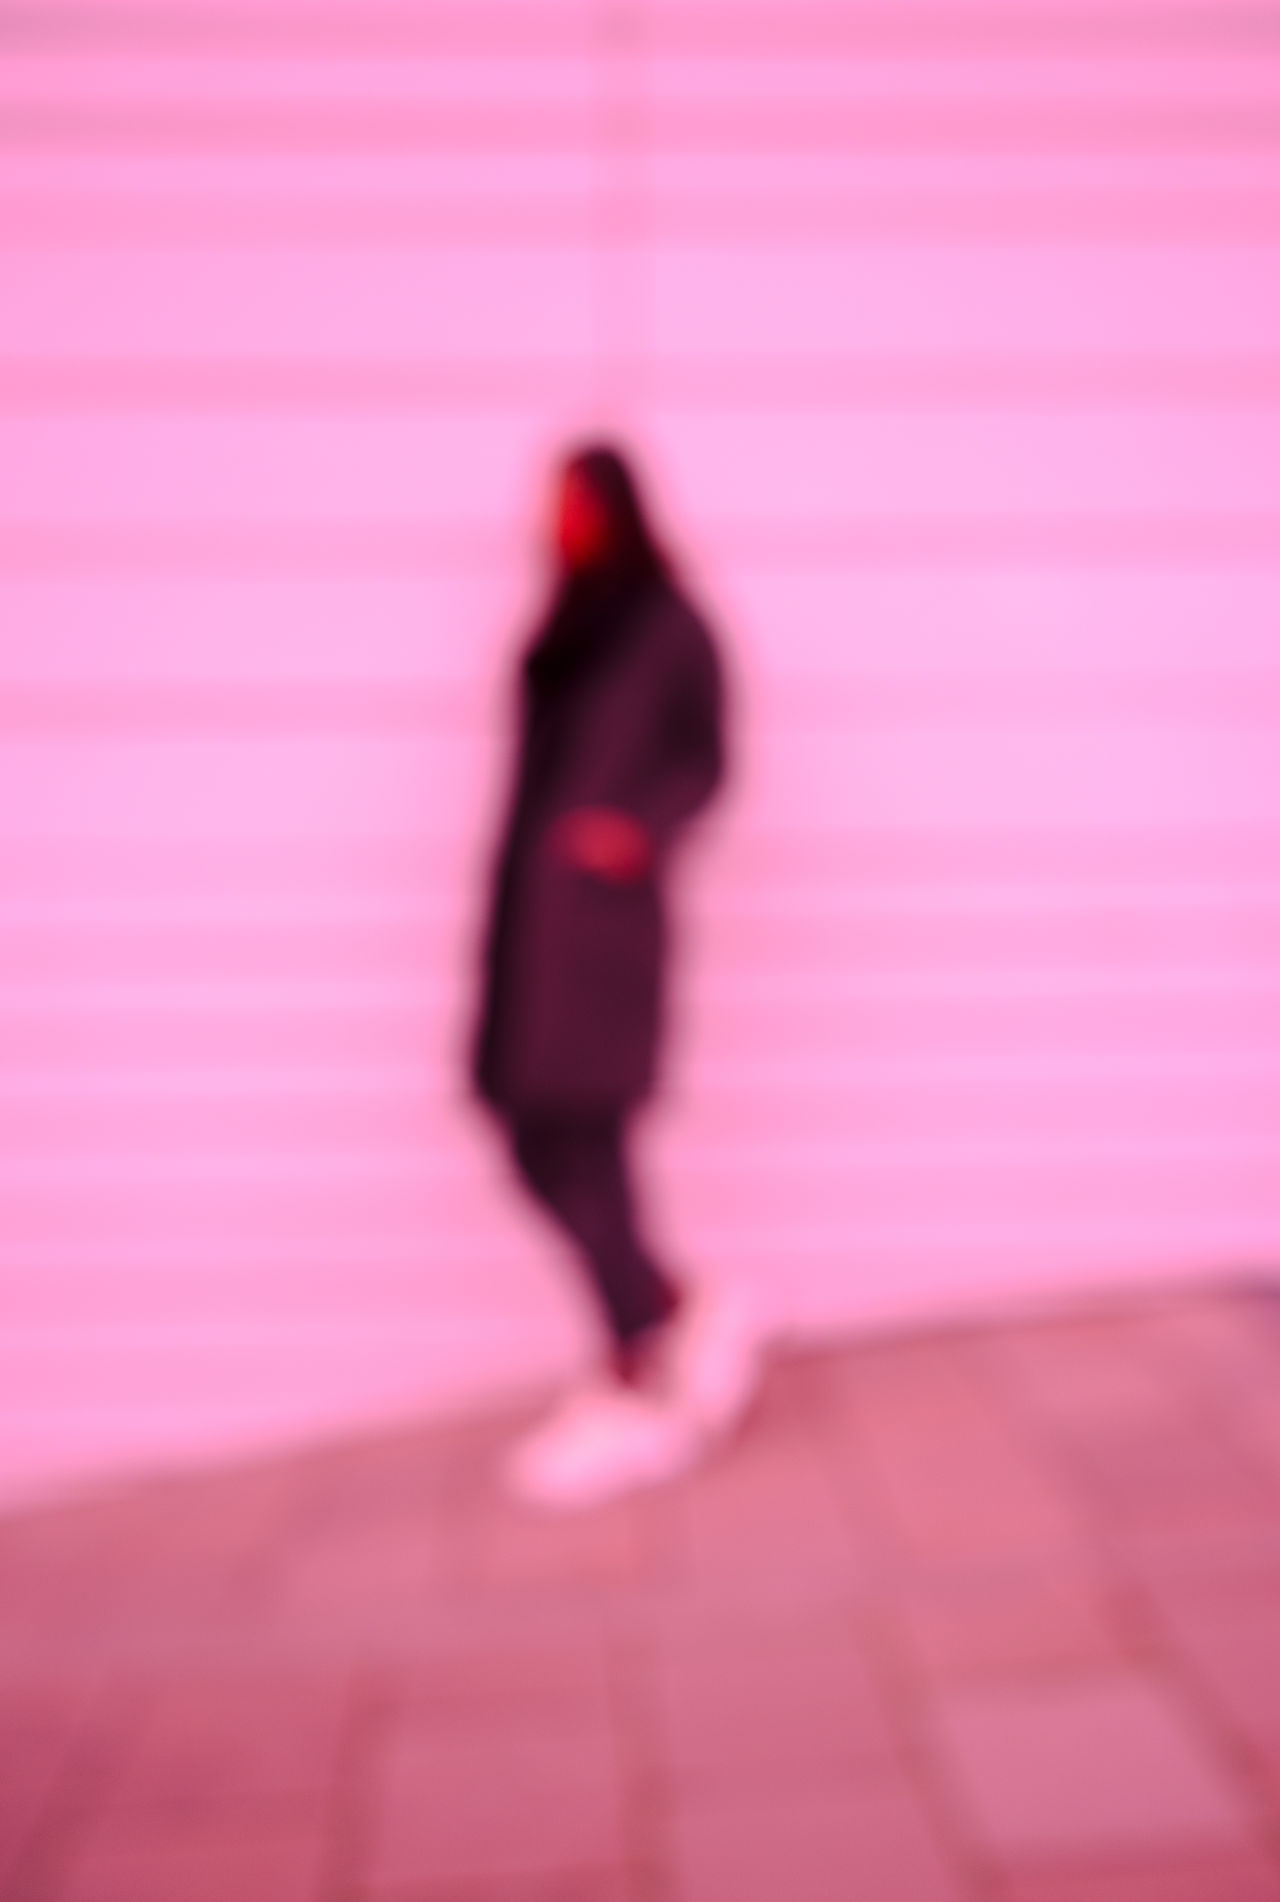 BLURRED SITUATION Adult Adults Only Blurred Motion Full Length One Person Pink Color Speed Walking